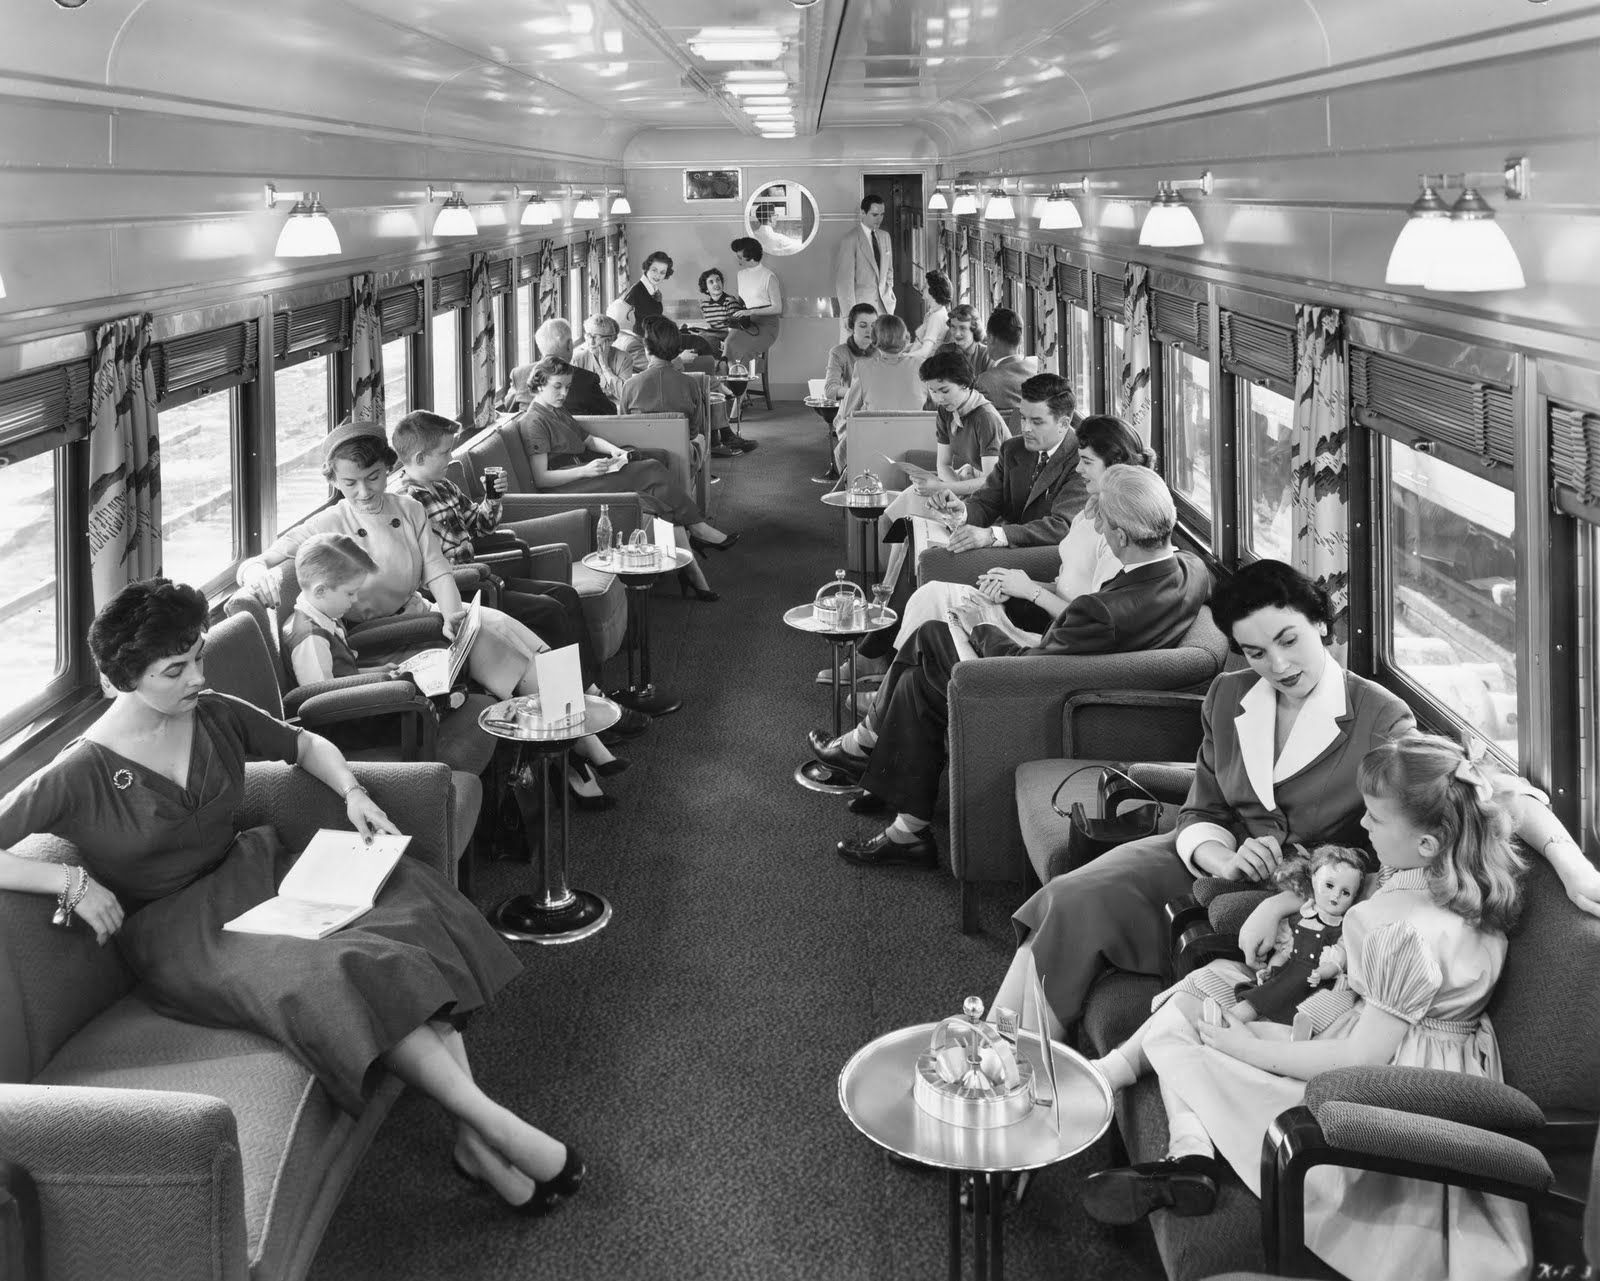 Old Fashion Train Rides With Sleeper Cars